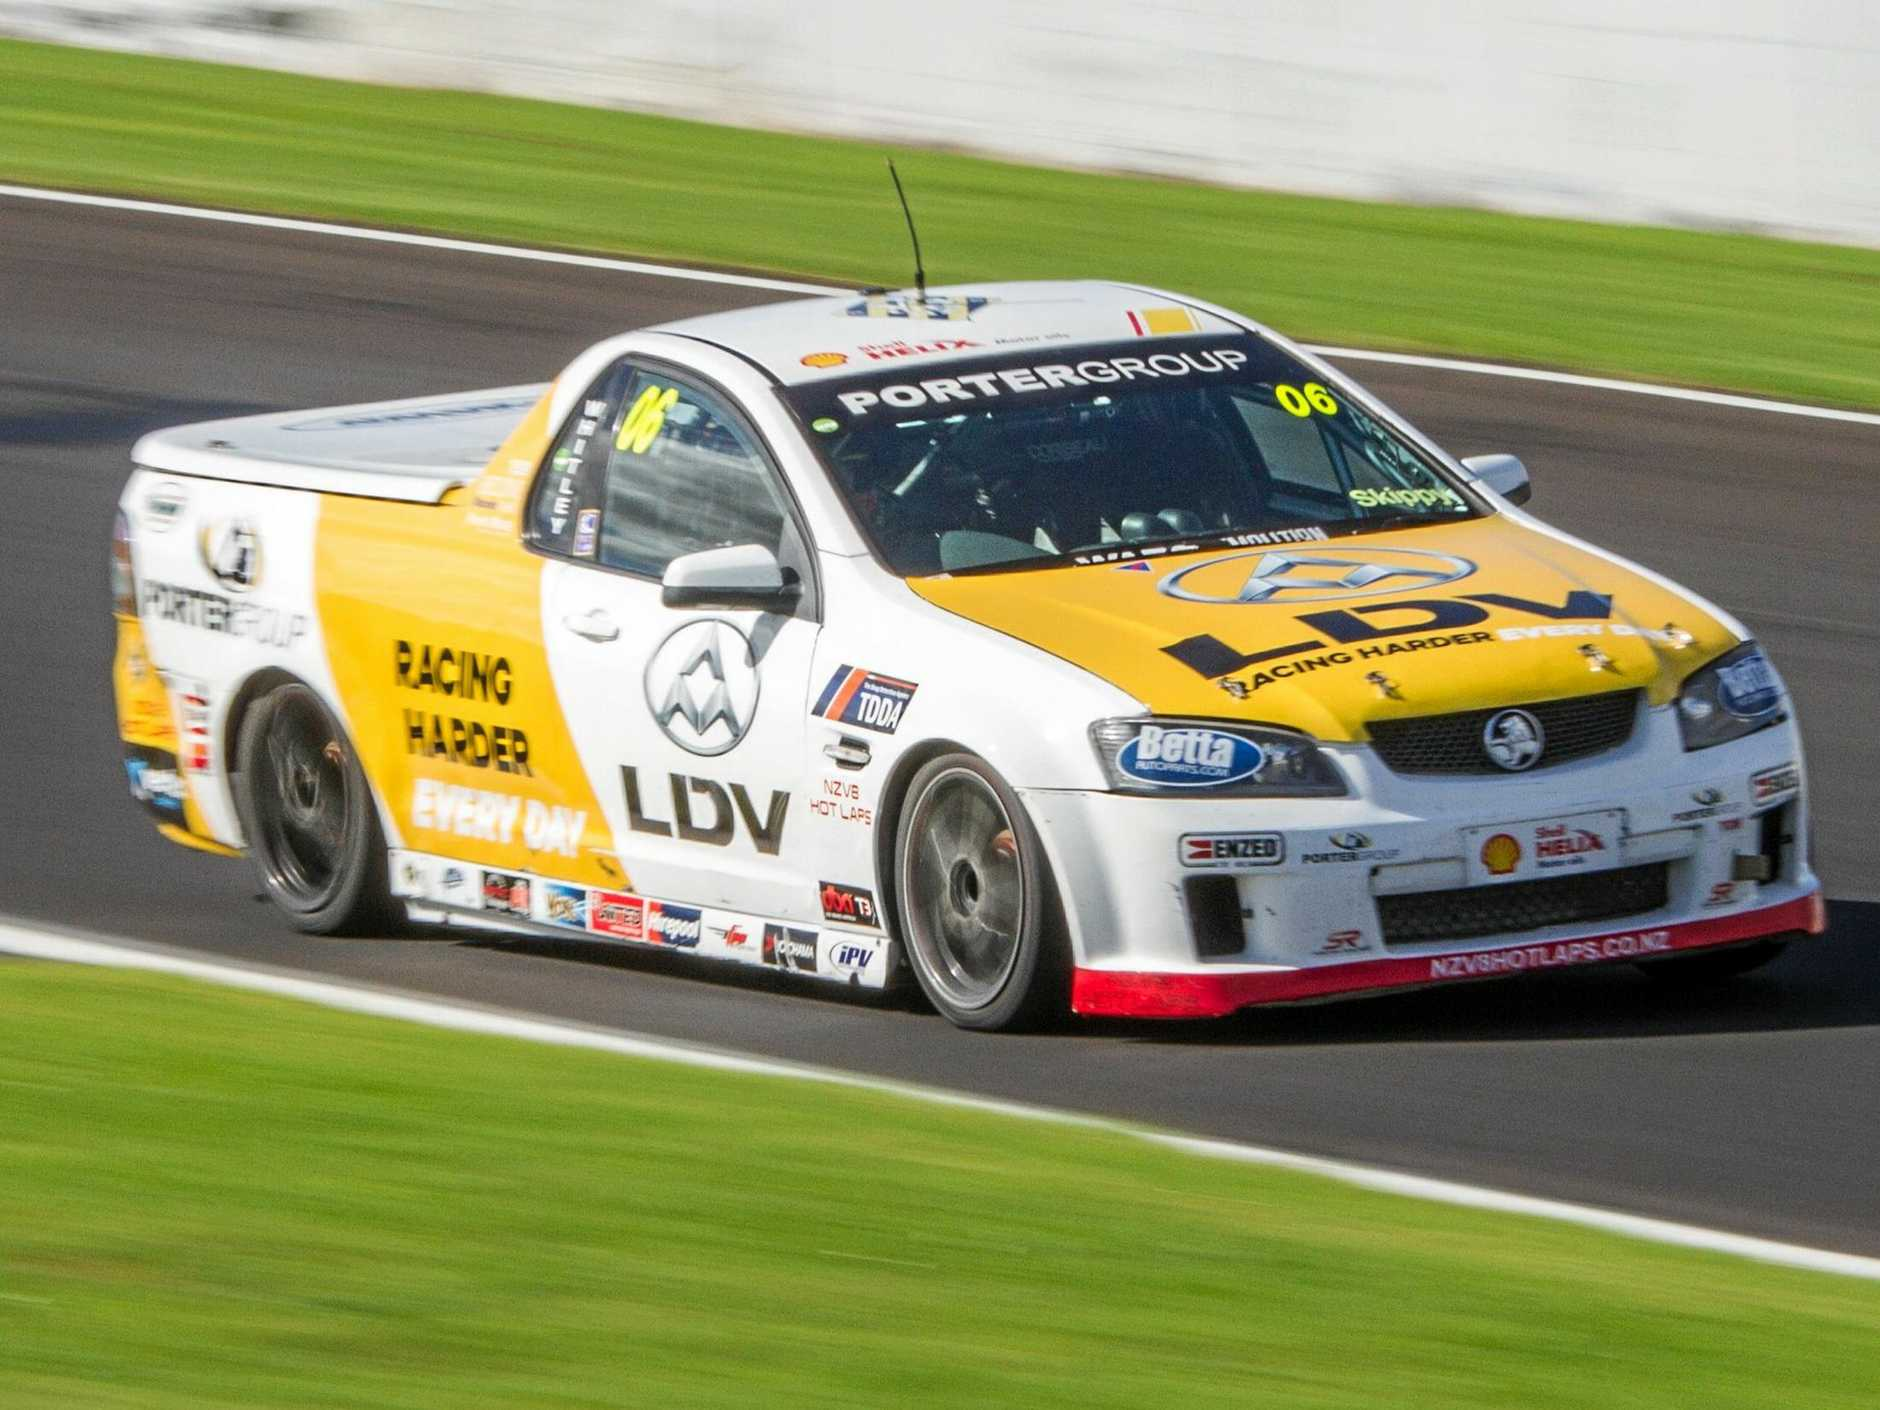 Toowoomba's Alexandra Whitley begins the new New Zealand V8 ute racing season this weekend in her recently purchased Holden Commodore VE.